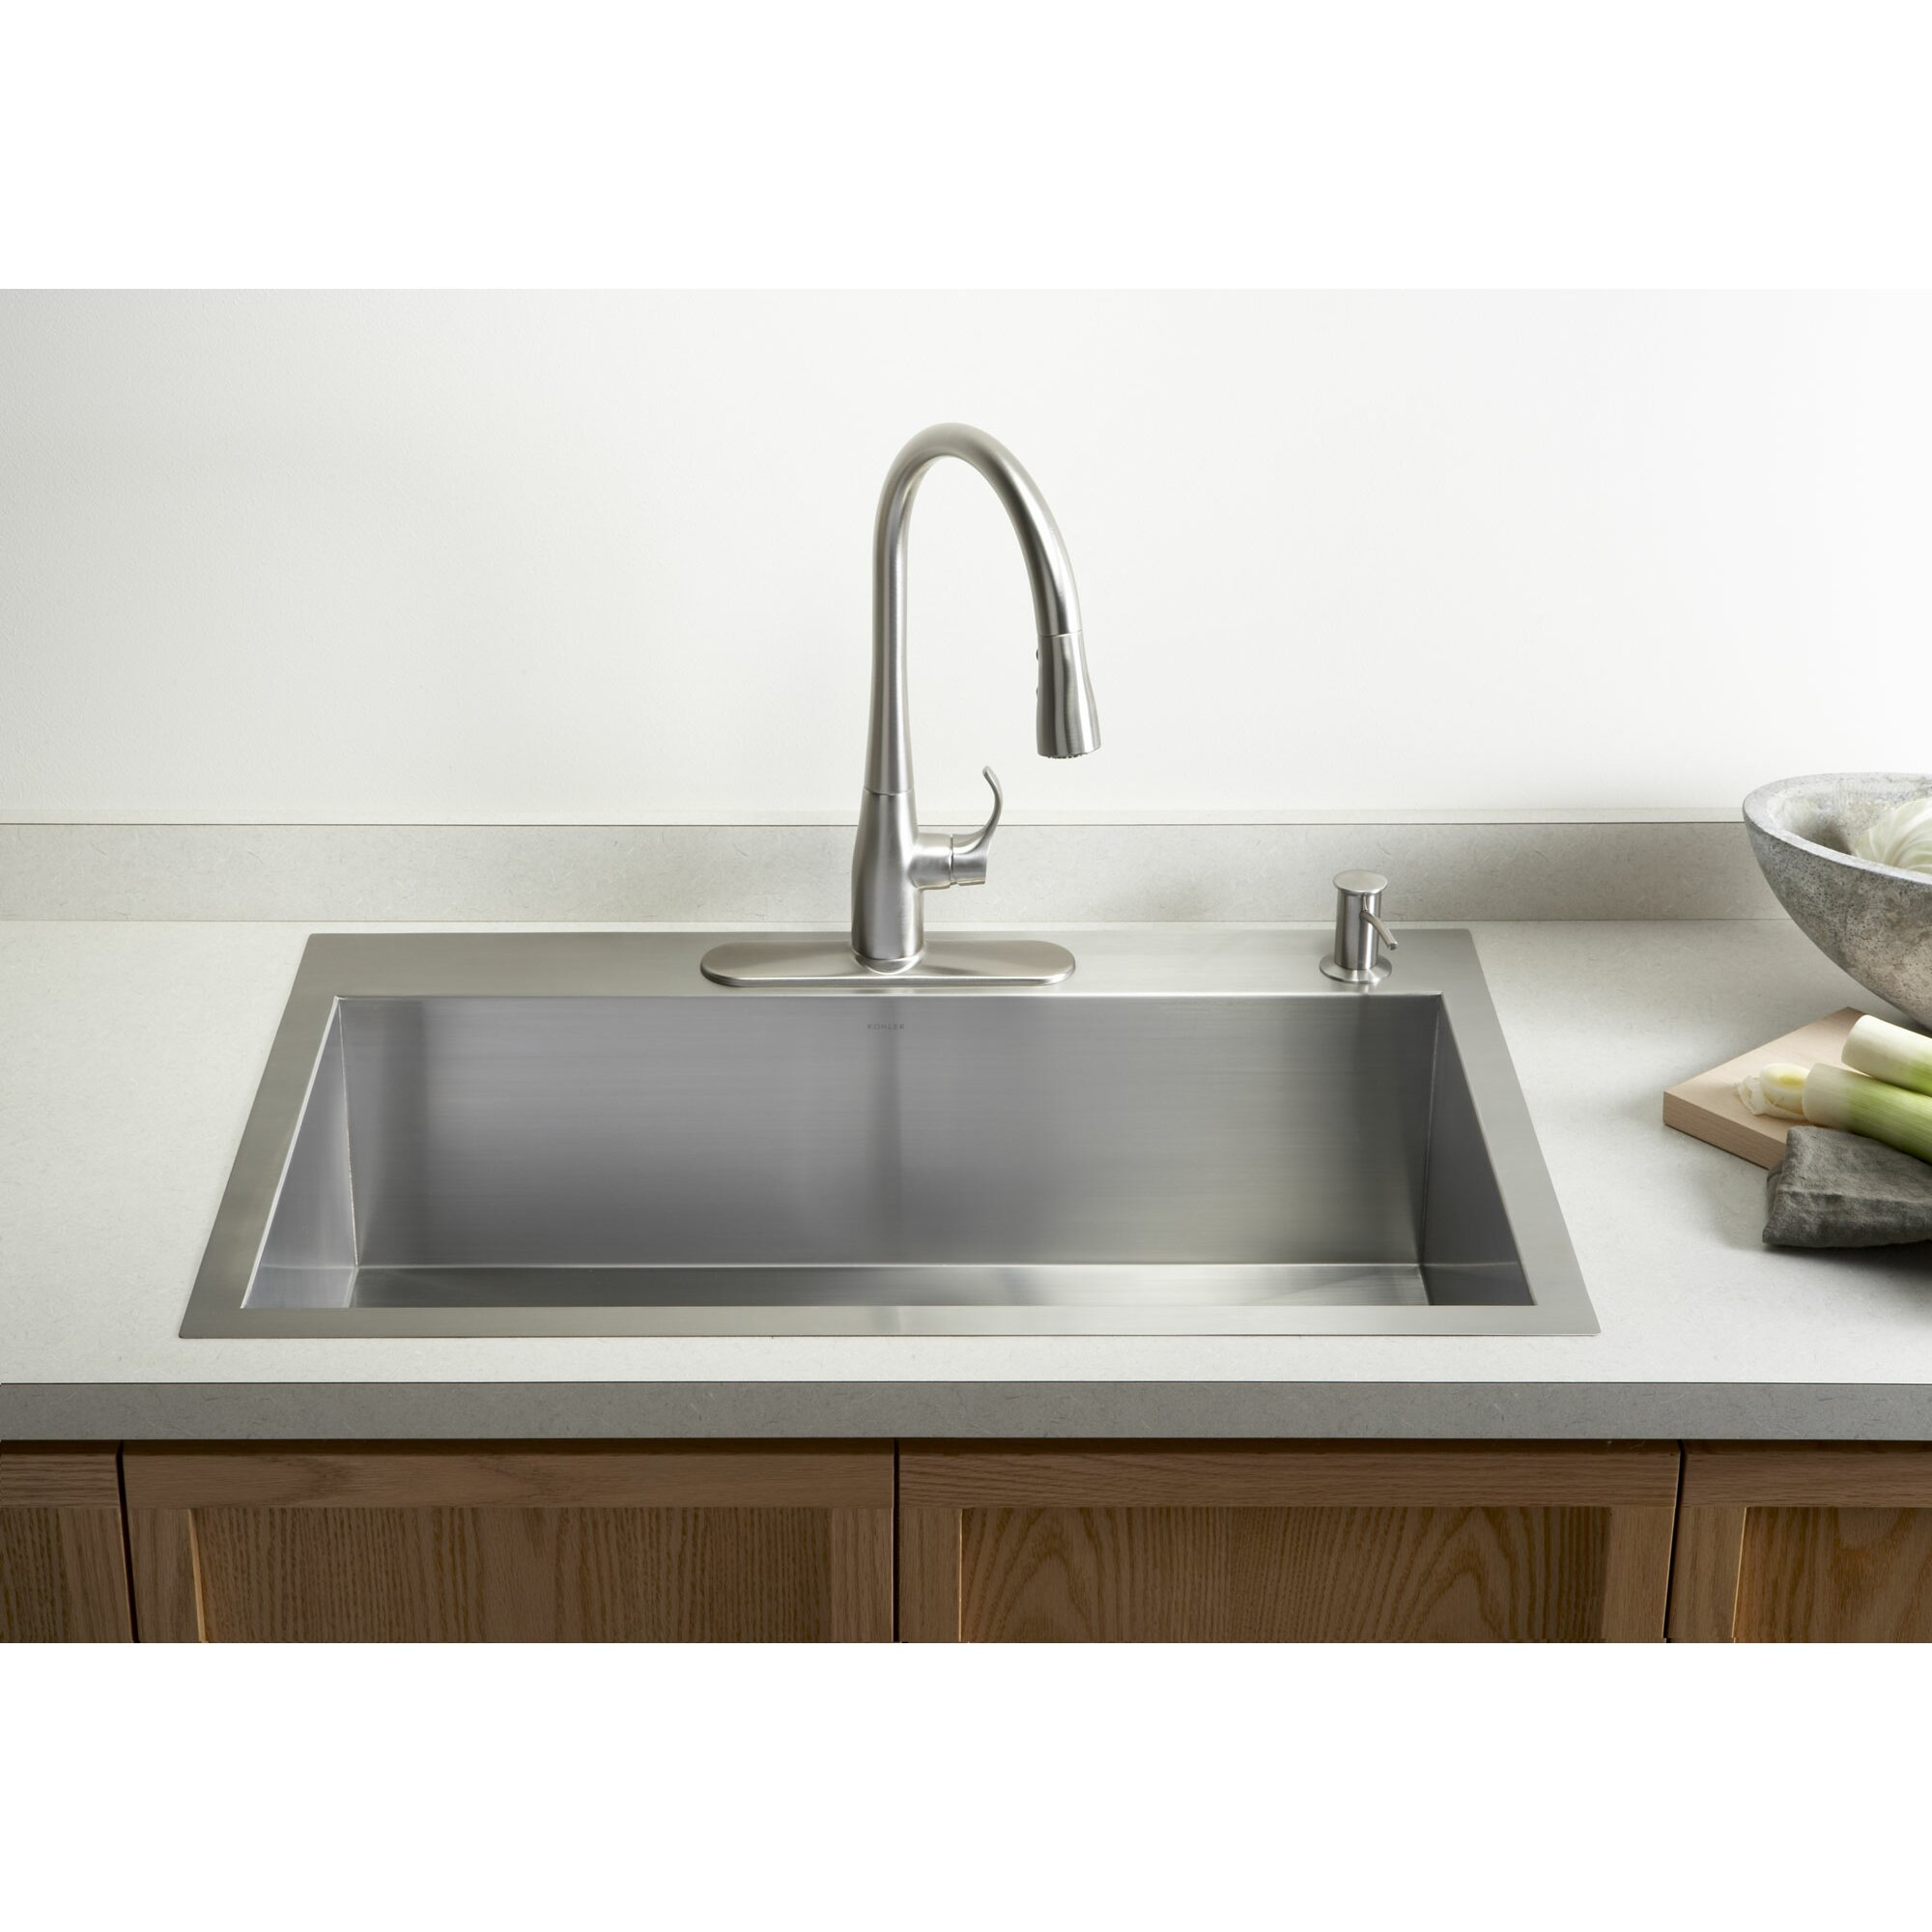 Top Mount Stainless Steel Kitchen Sinks home kitchen sinks top mount